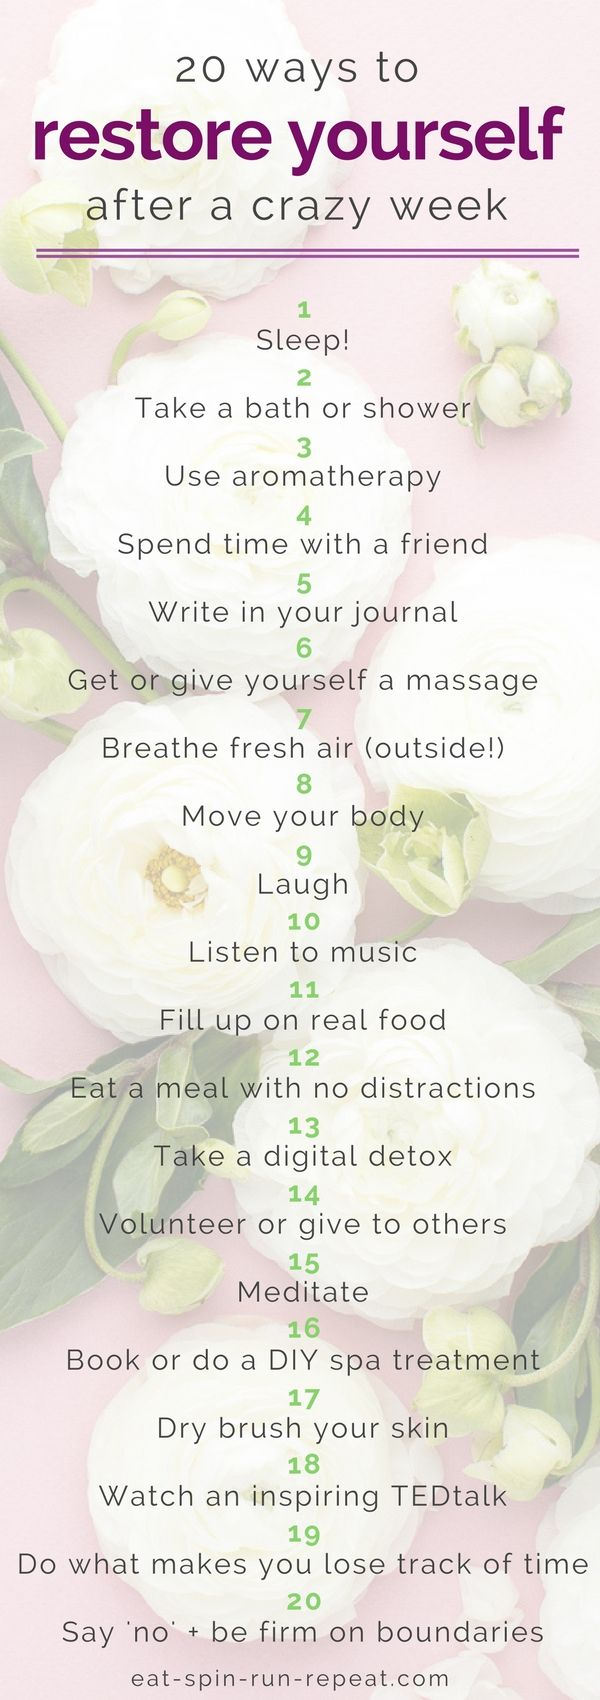 20 ways to restore yourself after a crazy week - Angela Simpson, Eat Spin Run Repeat